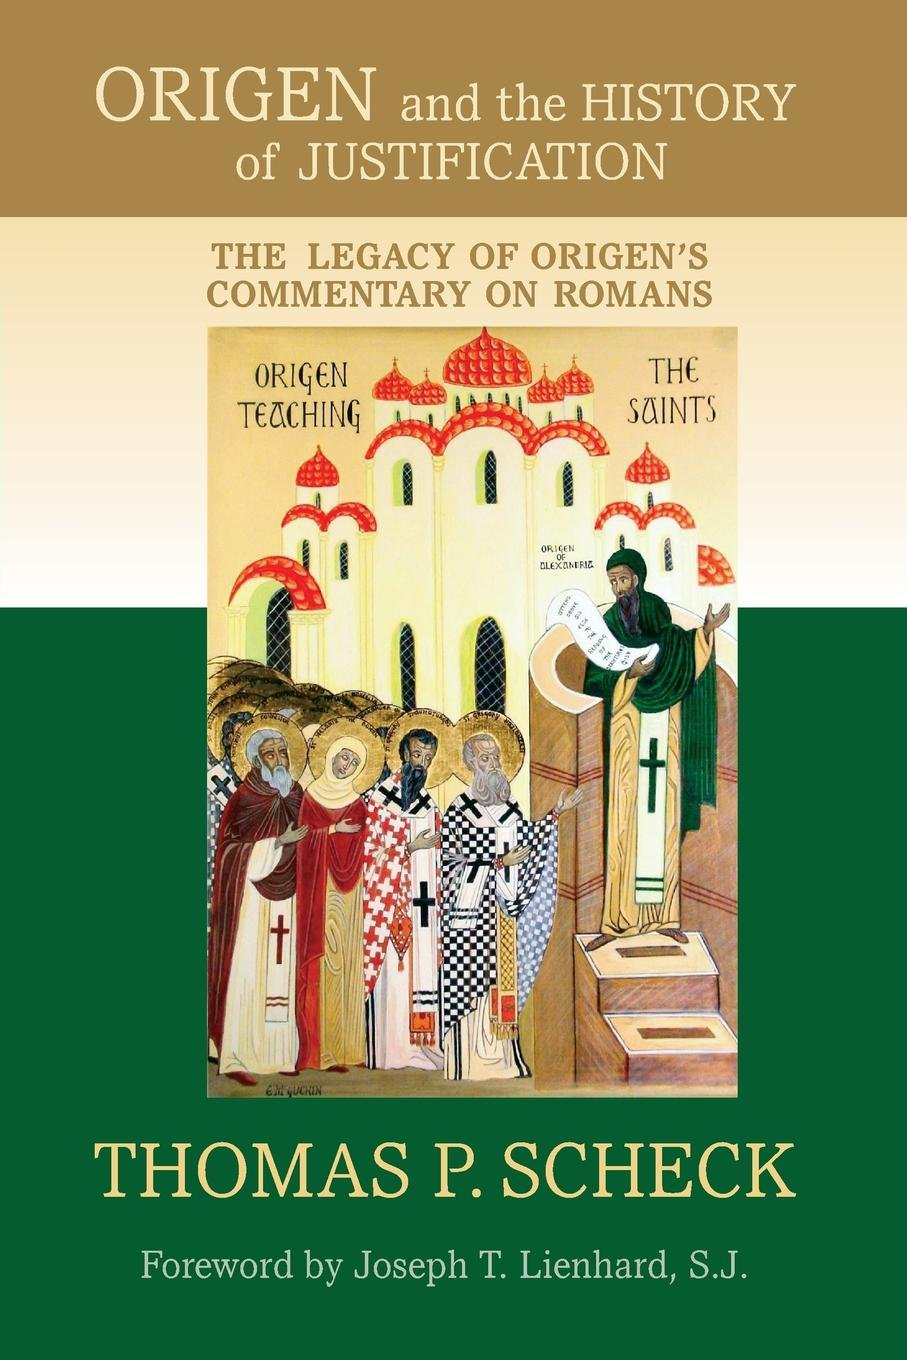 Origen and the History of Justification: The Legacy of Origen's Commentary on Romans pdf